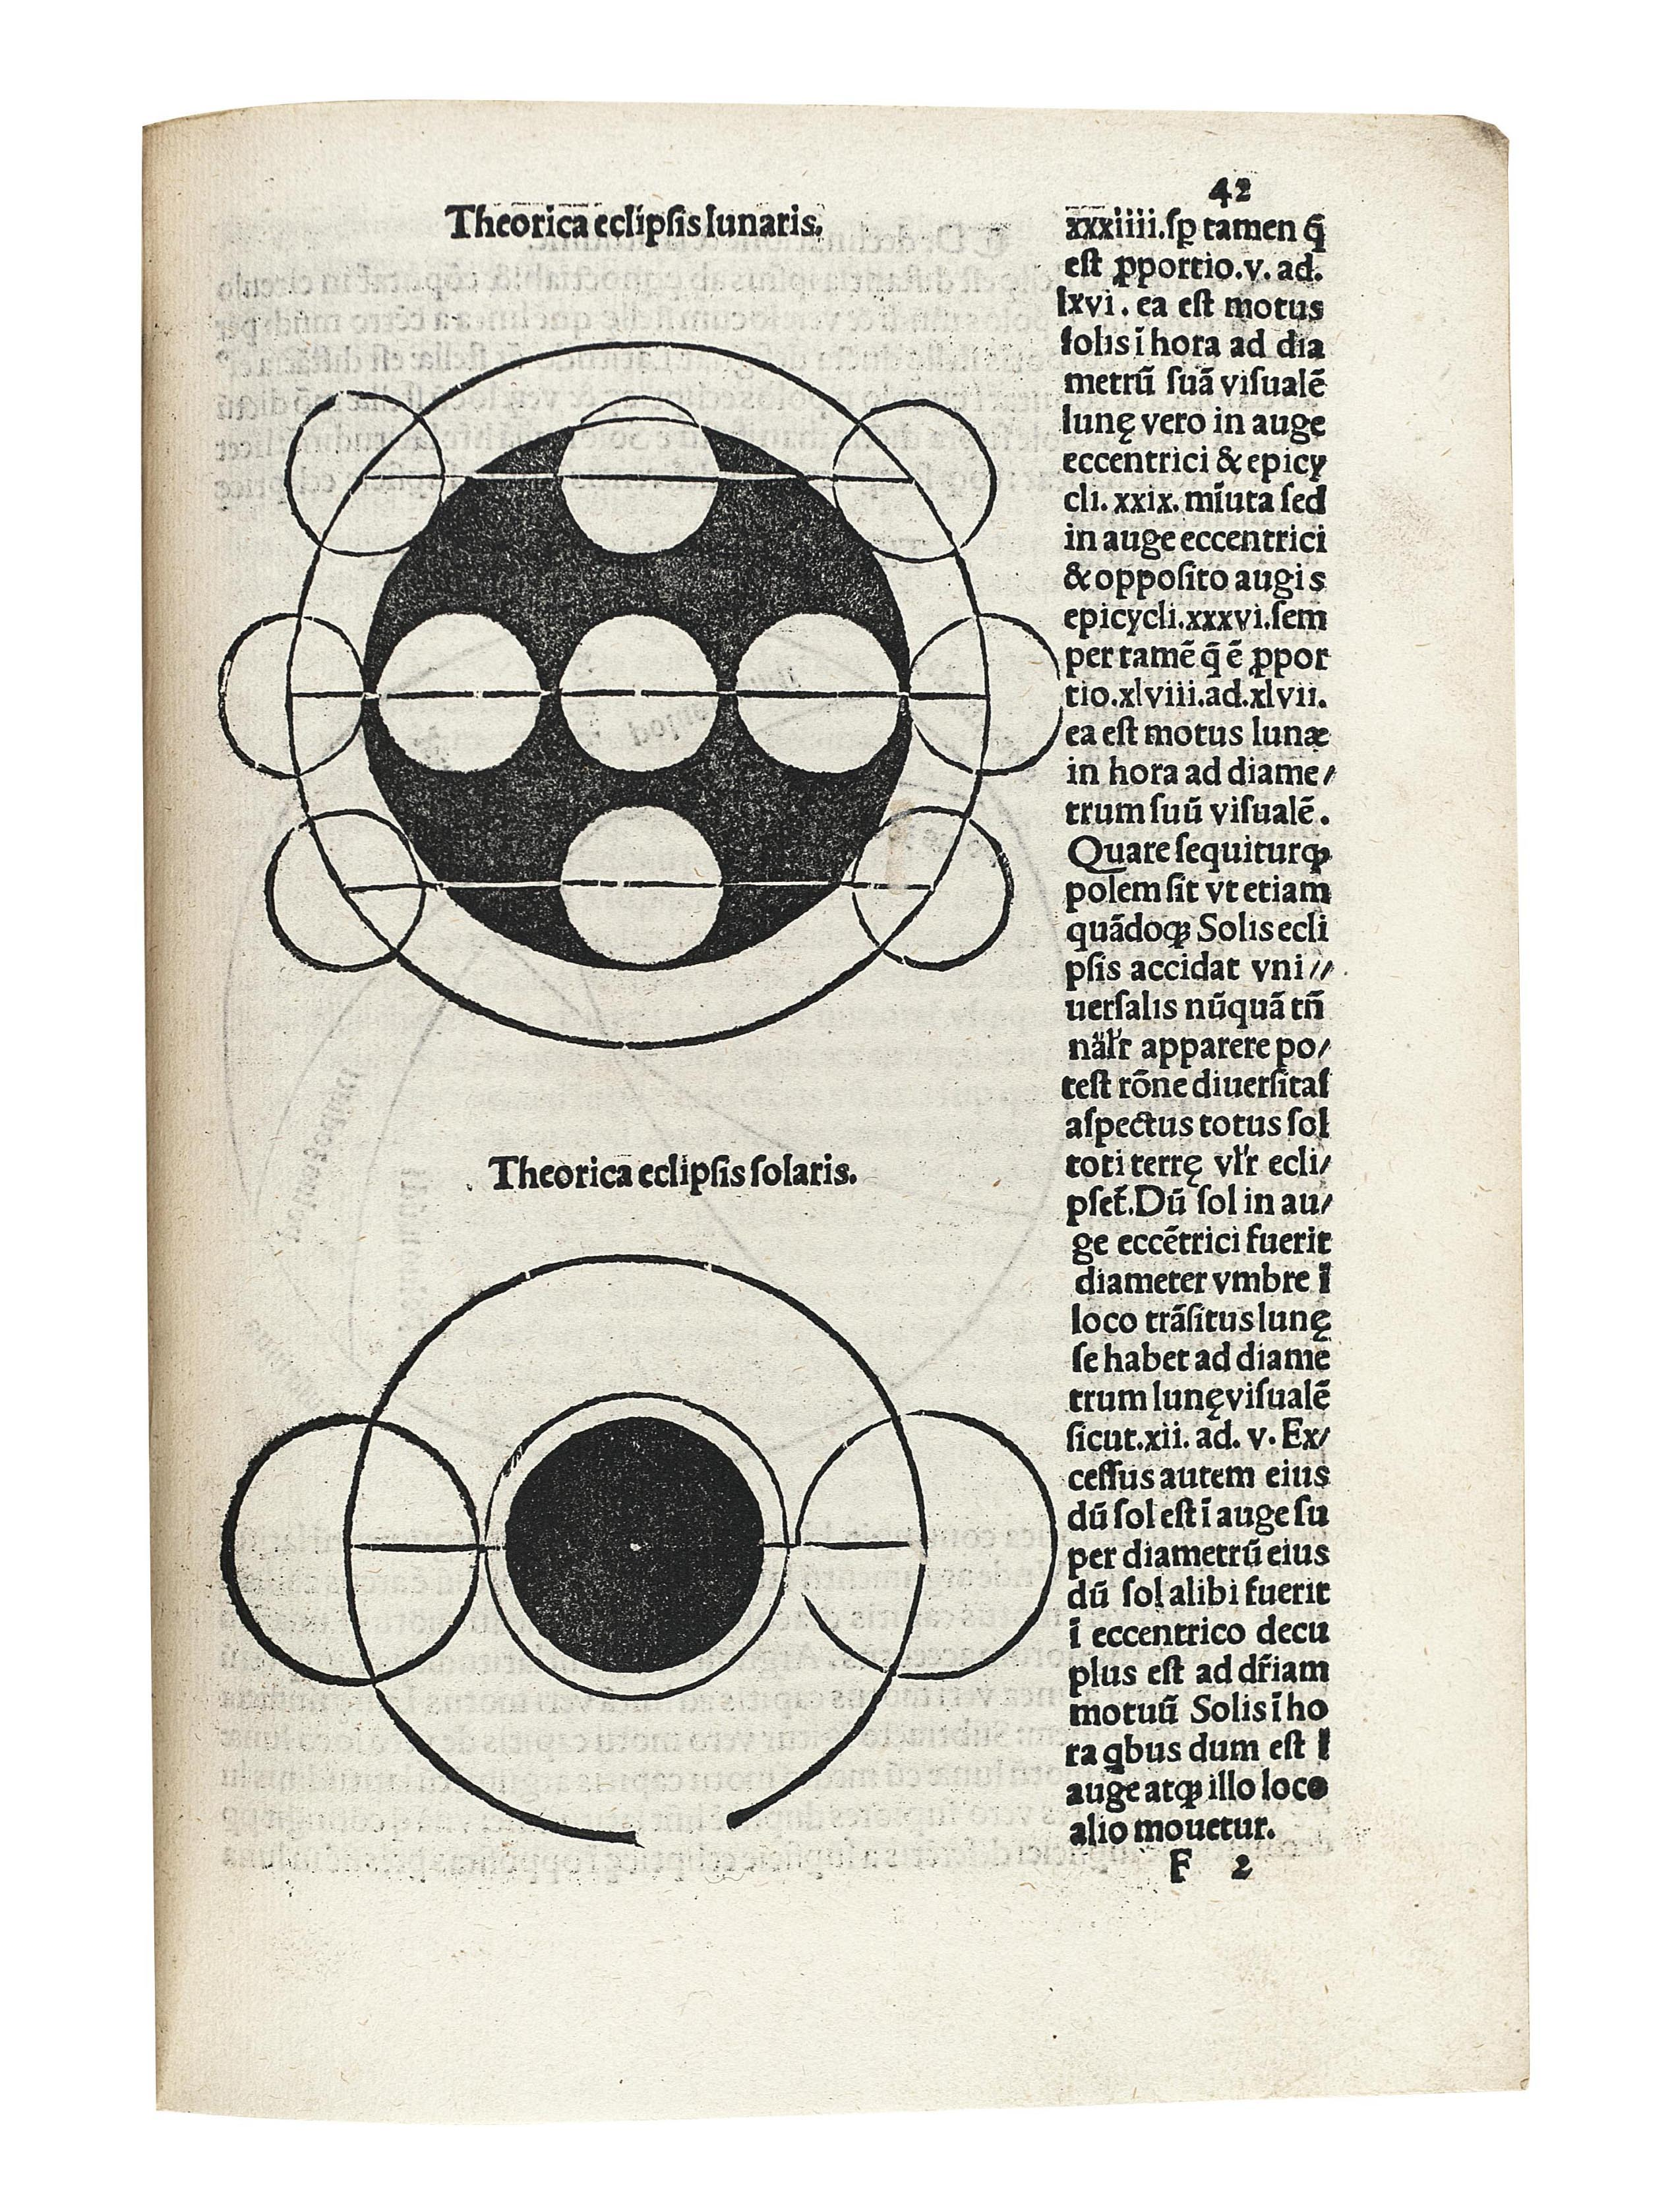 SACROBOSCO, Joannes de (fl.1230). Sphaera mundi. Venice: Jacobus Pentius de Leuco for M. Sessa, 24 December 1519. 4° (208 x 148mm). Fine woodcut on title of a seated astronomer flanked by two Muses, numerous woodcut illustrations and diagrams. (Title with some wear and repaired tears). 20th-century morocco gilt in period style, gilt edges. Provenance: Carolus ?Arpinus (title inscription, extensive marginalia and emendations, one on A3v dated 1521).